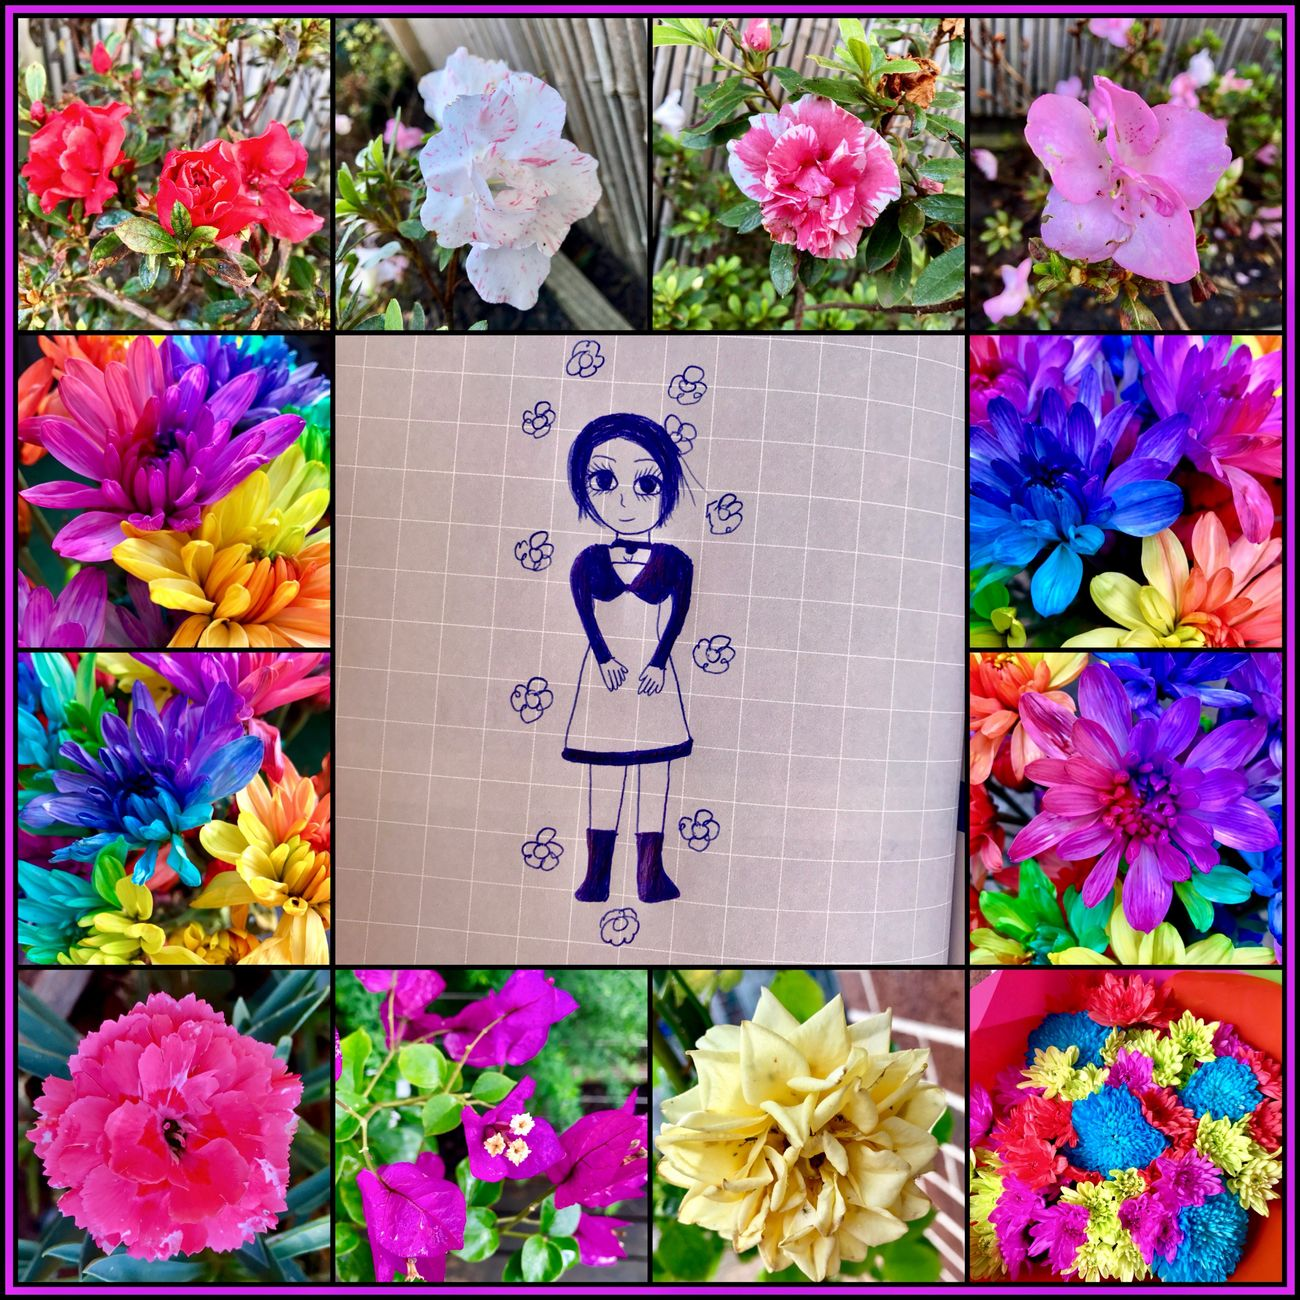 Combining art and flowers 🖊🌺💐🍃🖊 Flowers Flowerocollage Flowers Of EyeEm EyeEm Gallery Drawing Sketching Art Girl Eyeem Art 🖊🍃🌺💐🖊